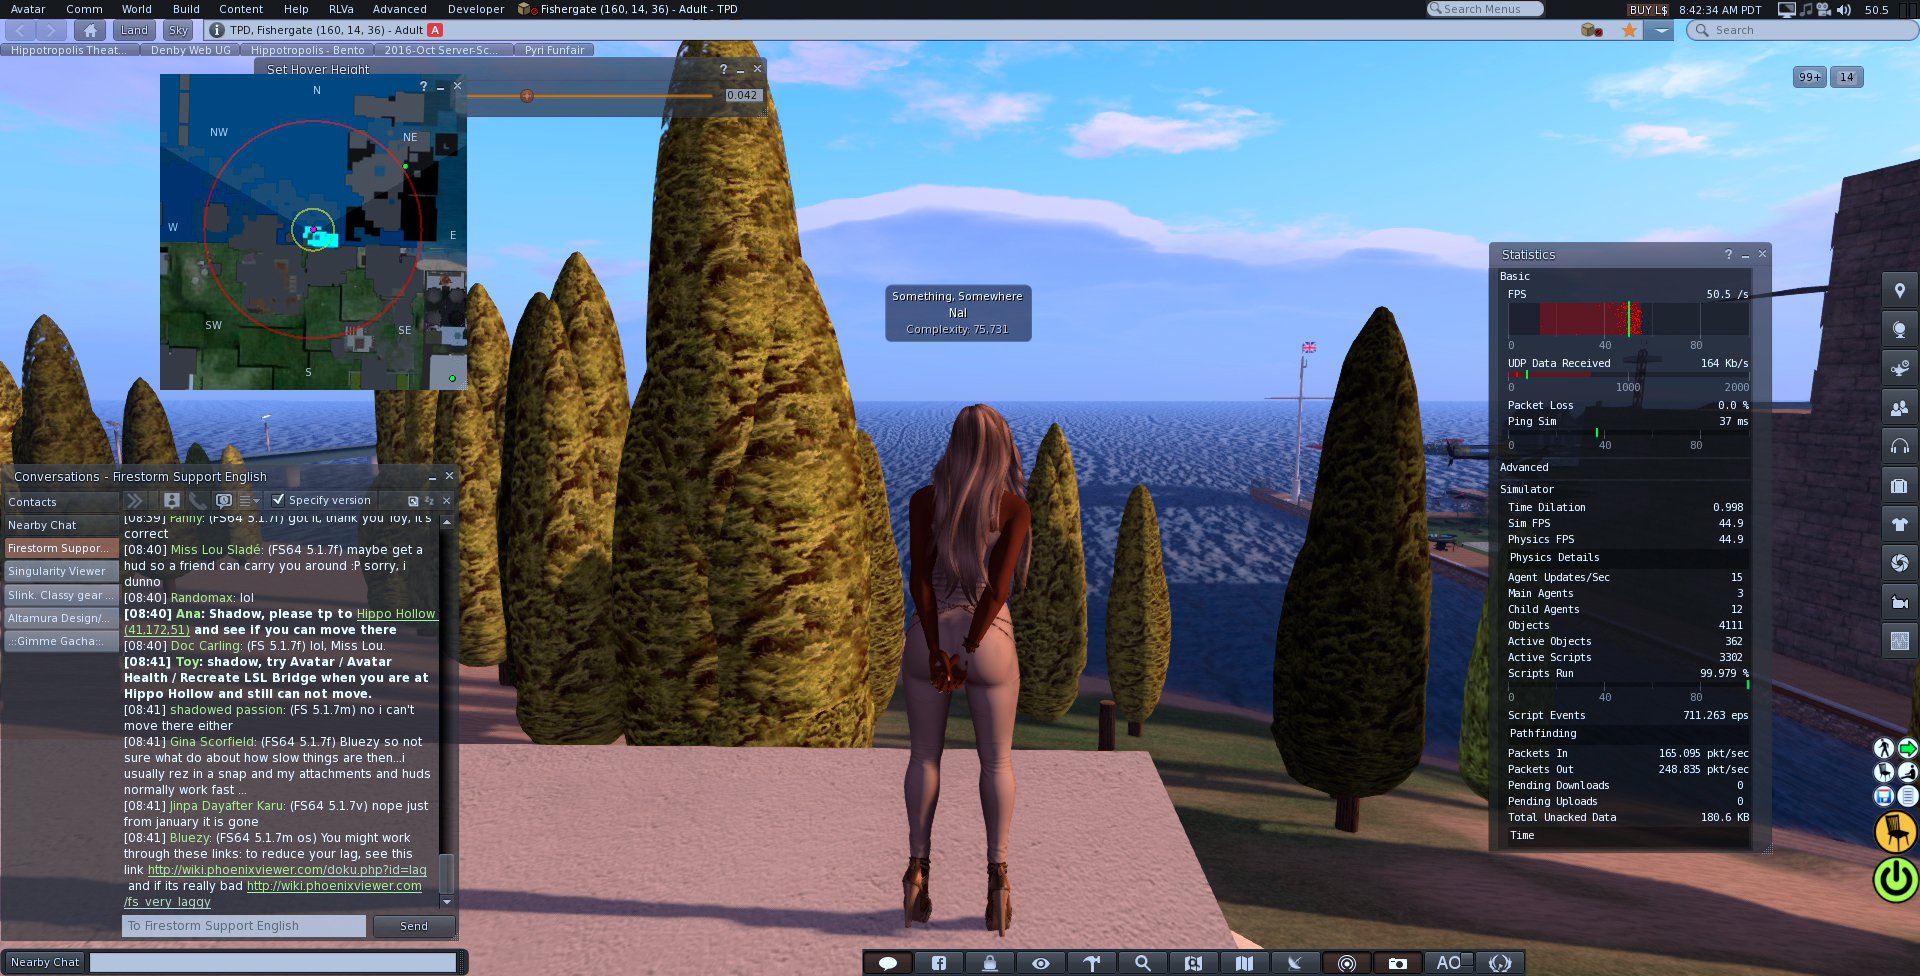 Firestorm is one hell of a memory hog second life viewer.